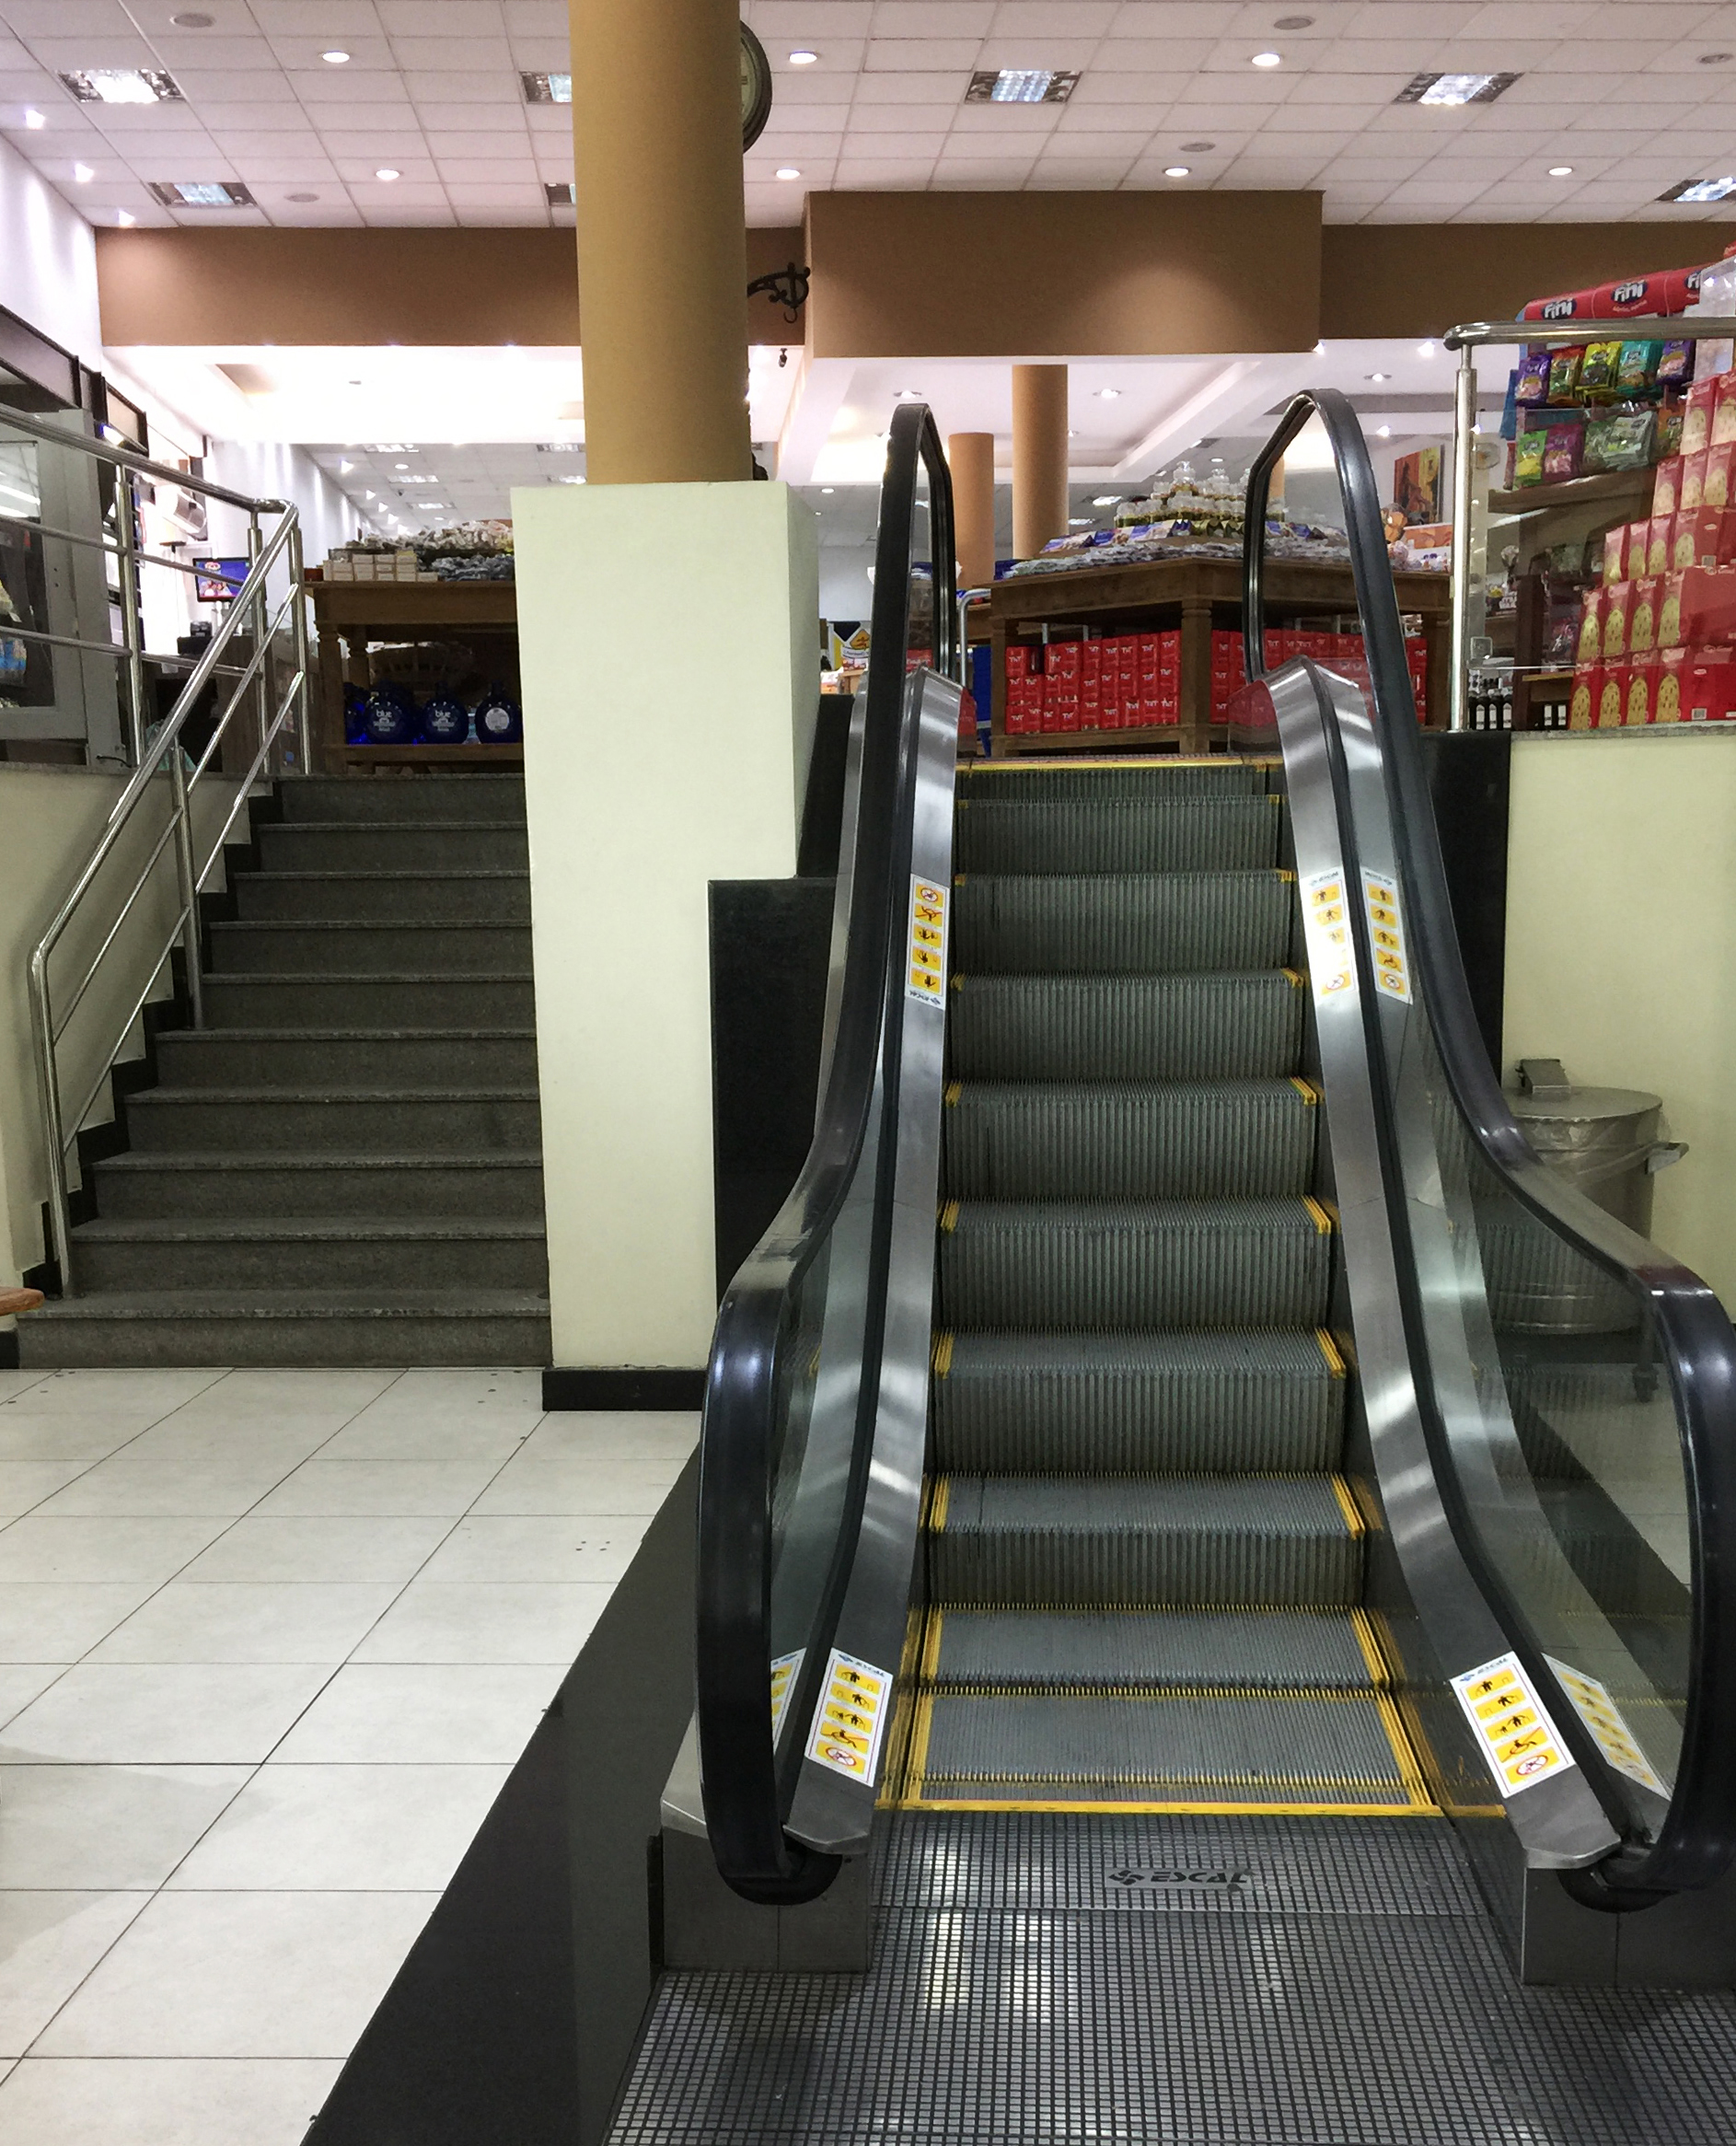 escalator, graal rest stop,minas gerais, brasil - At only seven steps, the World's Shortest Escalator. Cf. the staircase to the left, with ten steps.